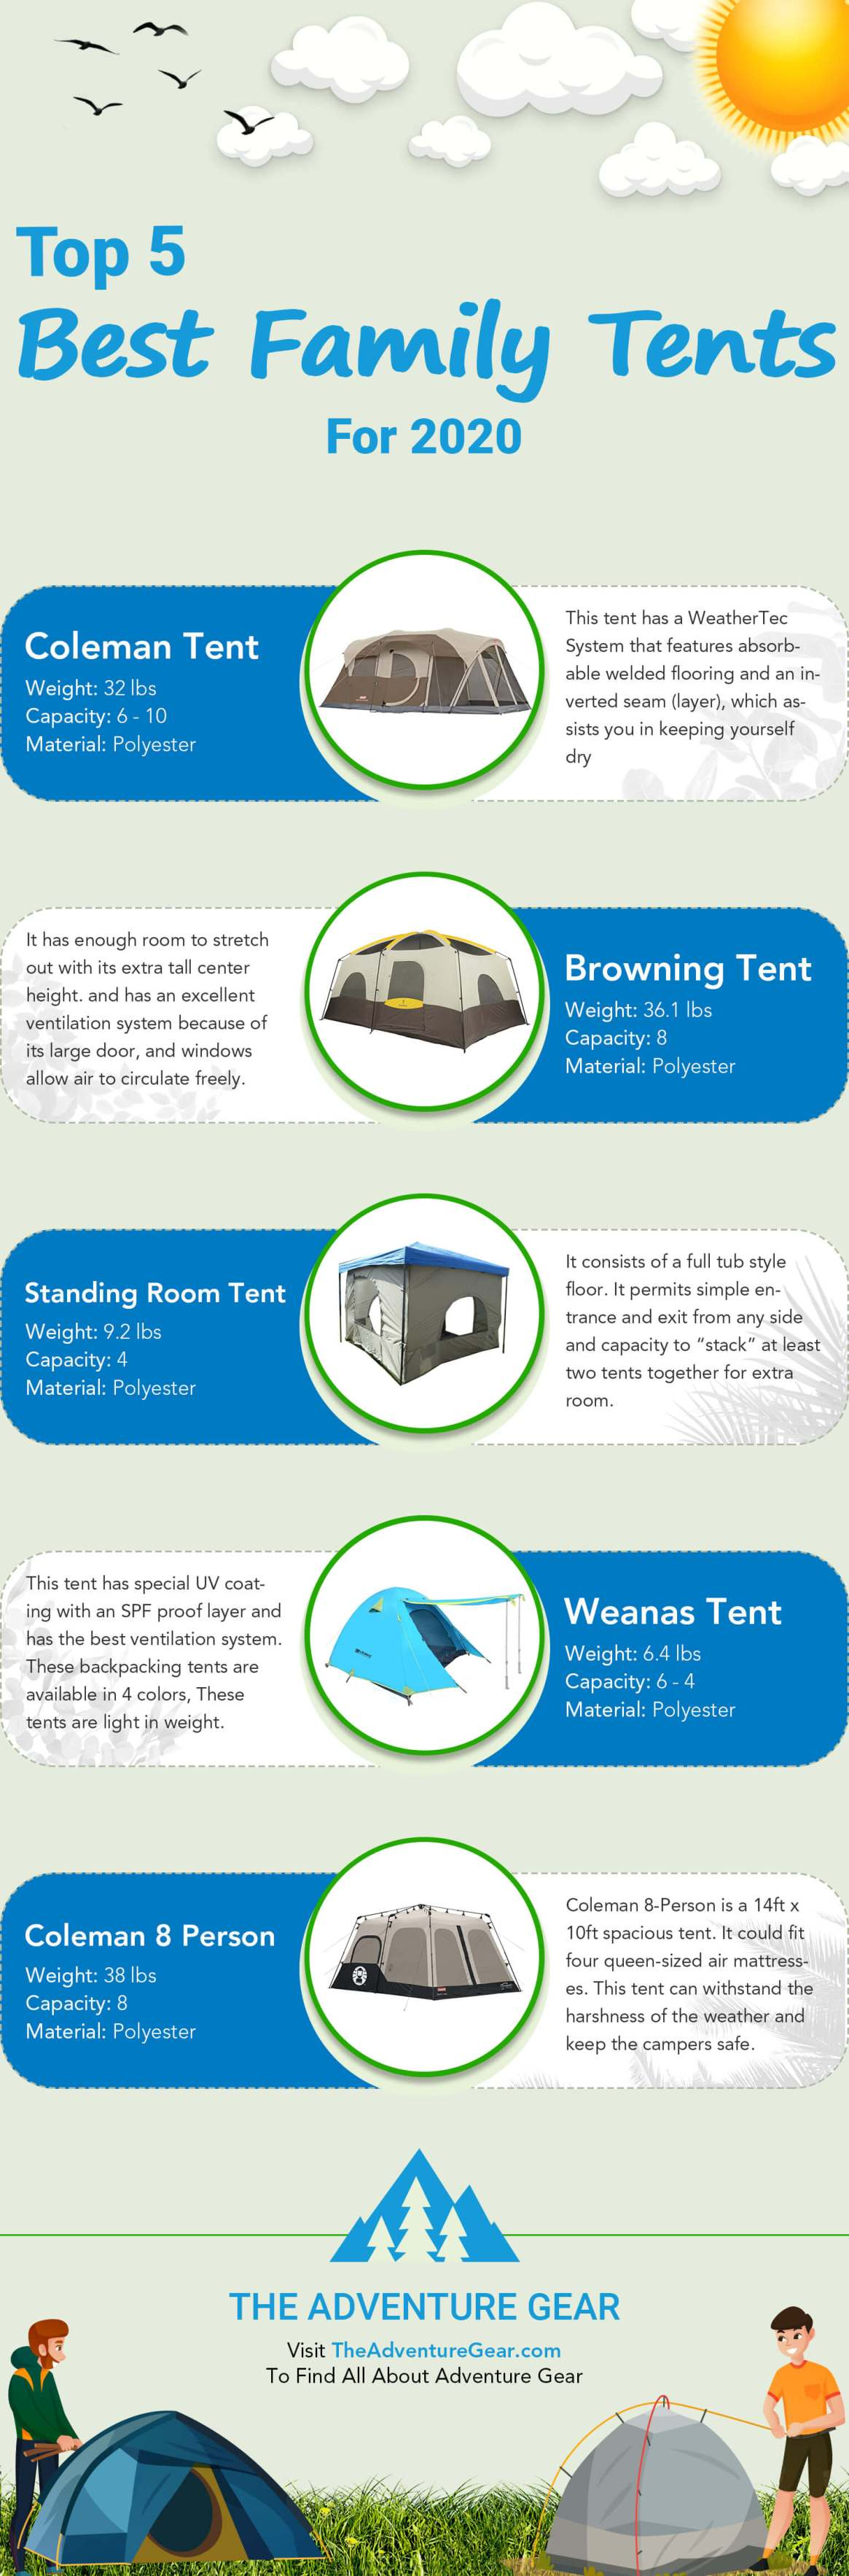 What are the best waterproof tents?